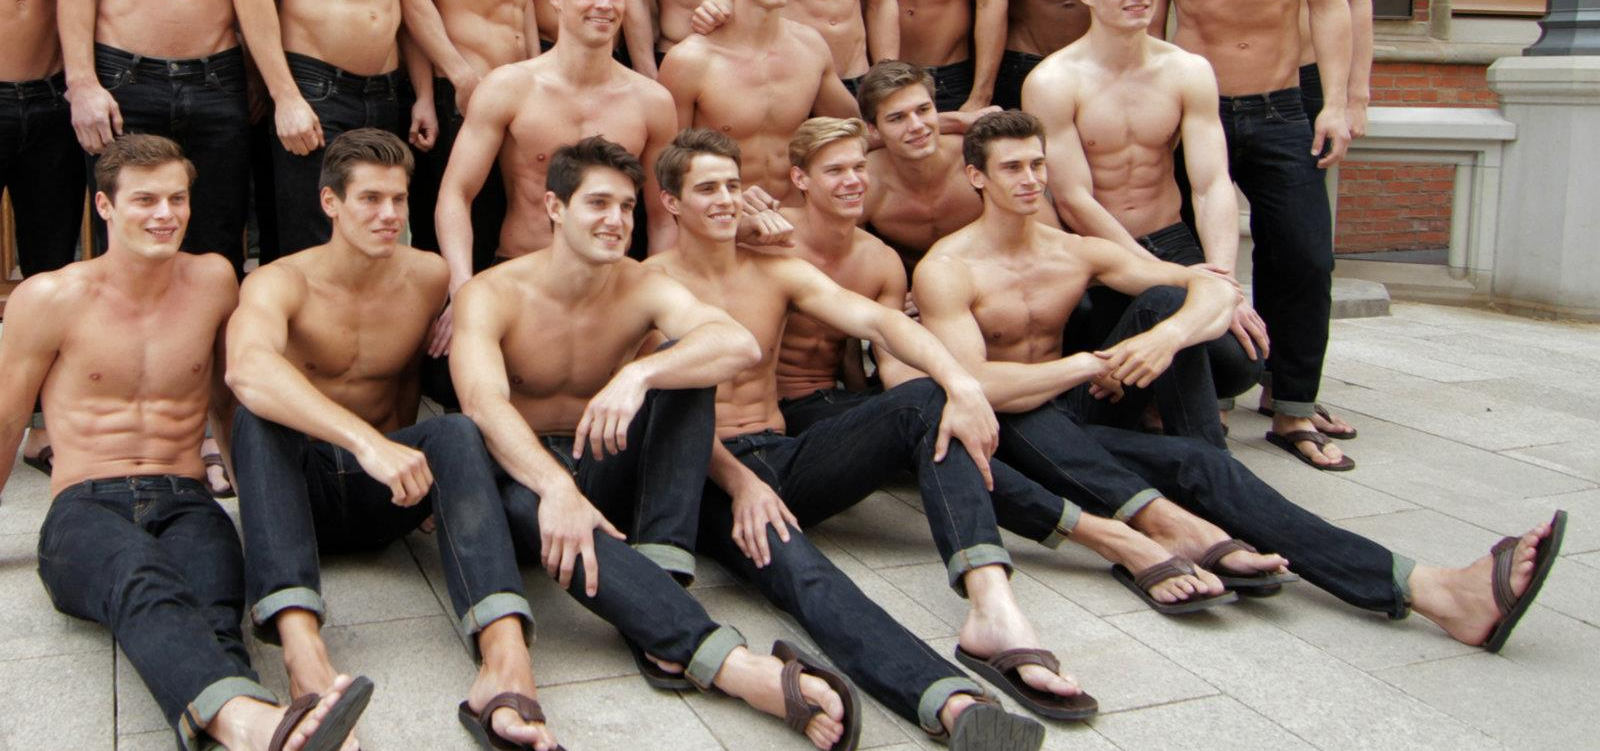 abercrombie and fitch popularity among youths Abercrombie & fitch milano 92 likes the hottest abercrombie and fitch clothing are on sale in amazing parices with high quality.